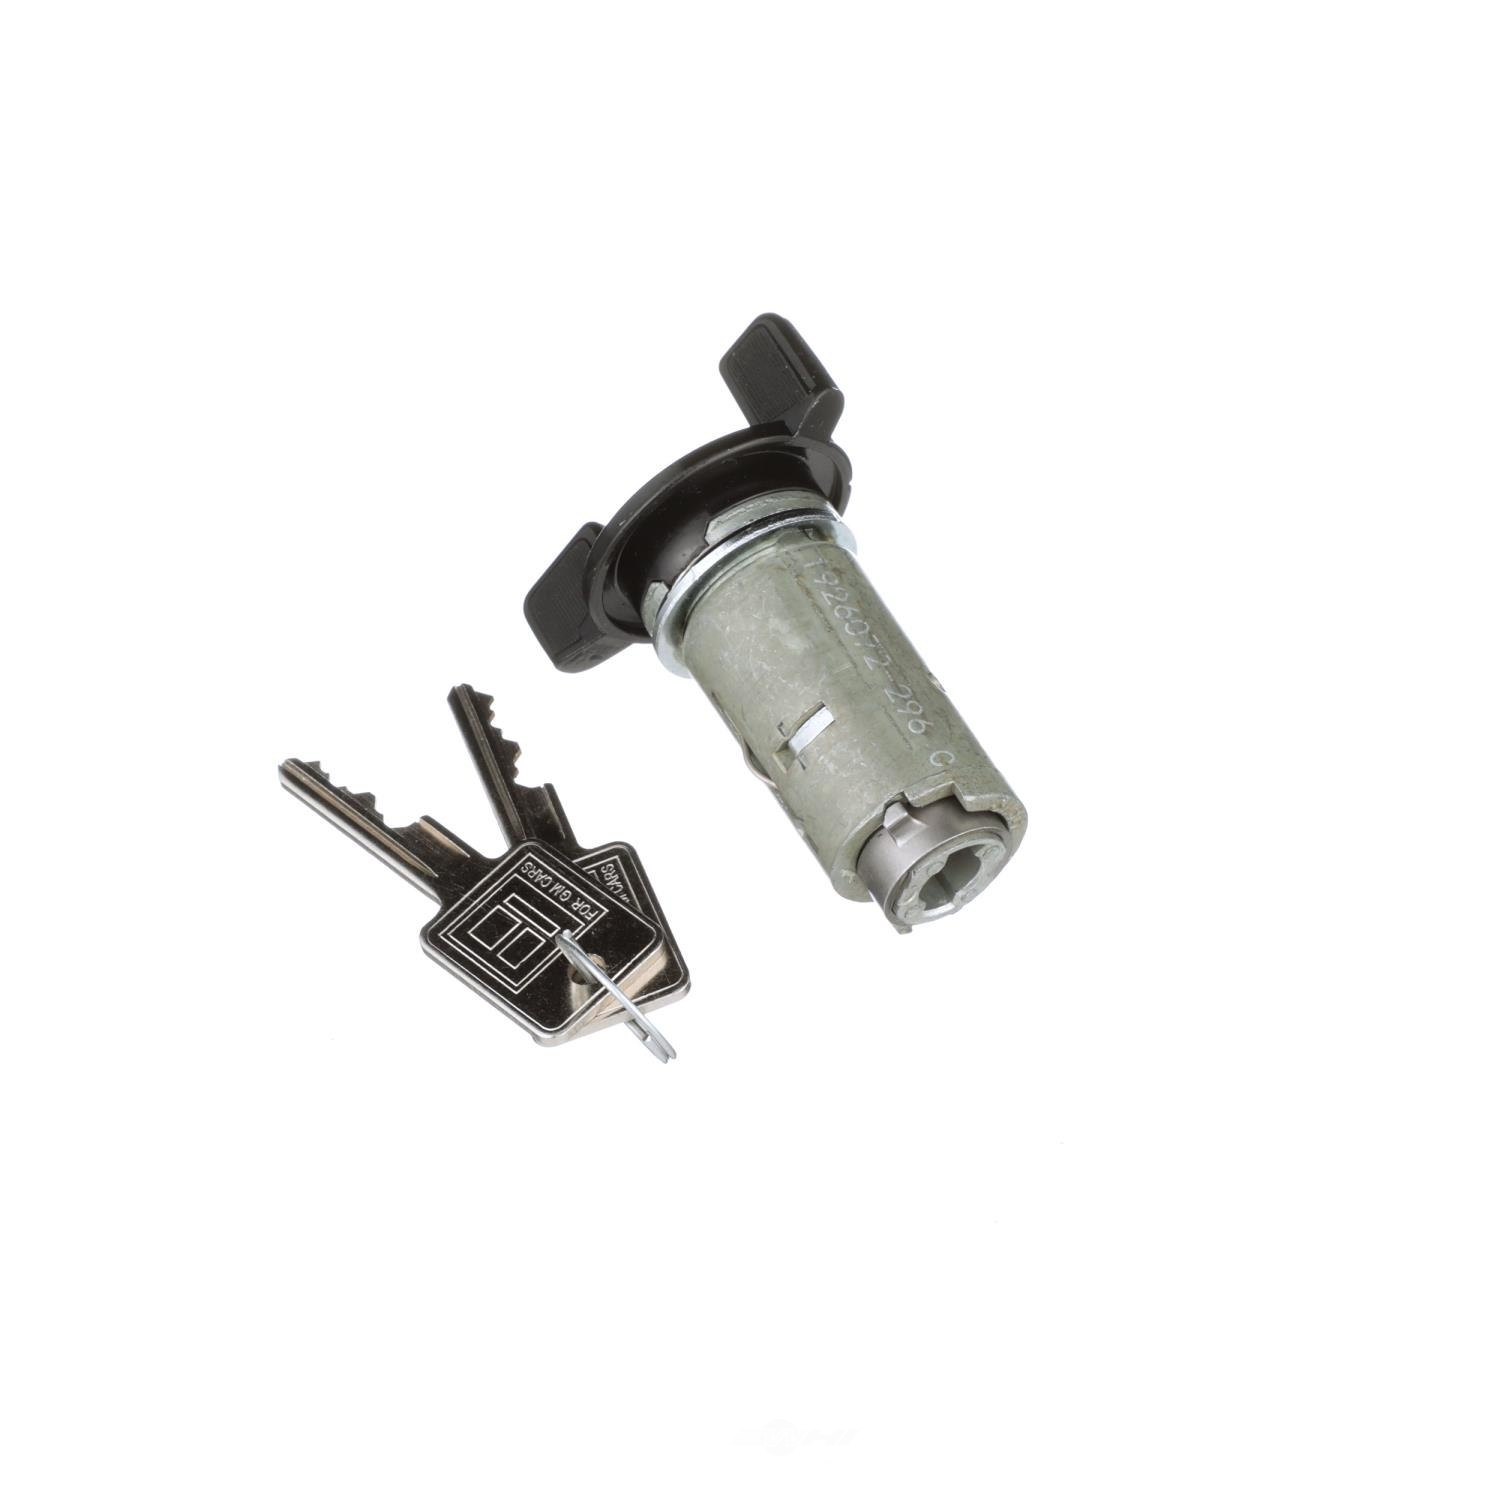 STANDARD T-SERIES - Ignition Lock Cylinder - STT US117LT